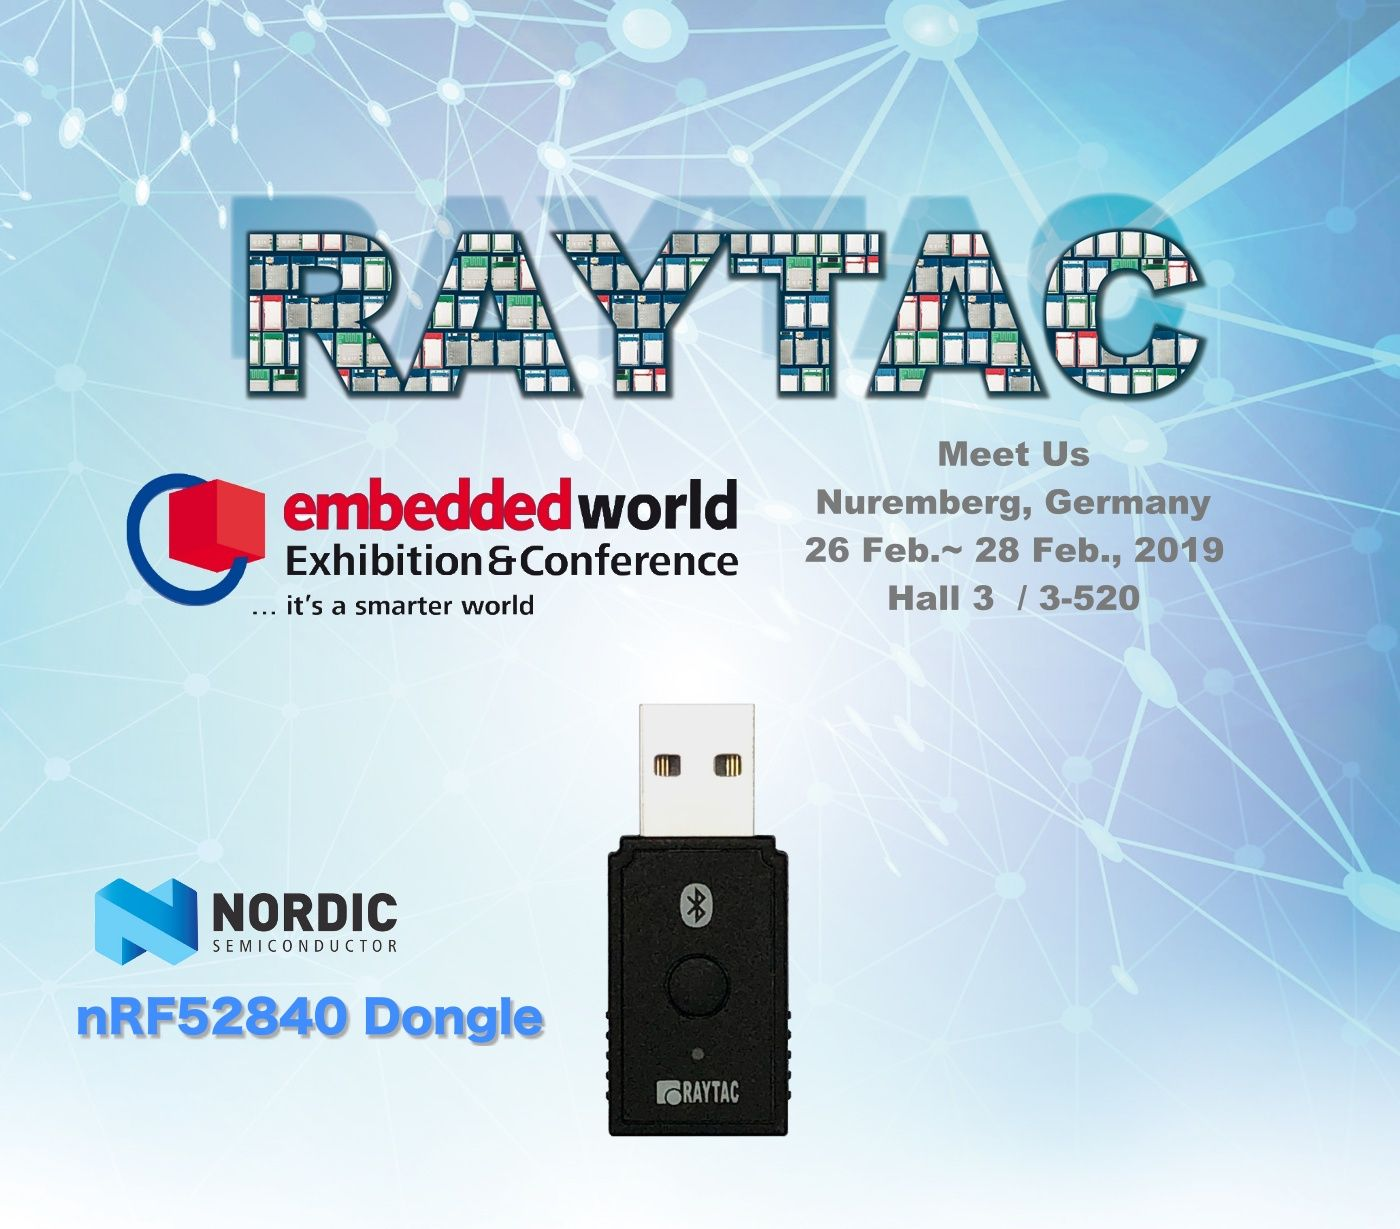 Come to meet us at Embedded World! Nuremberg, Germany 26 Feb